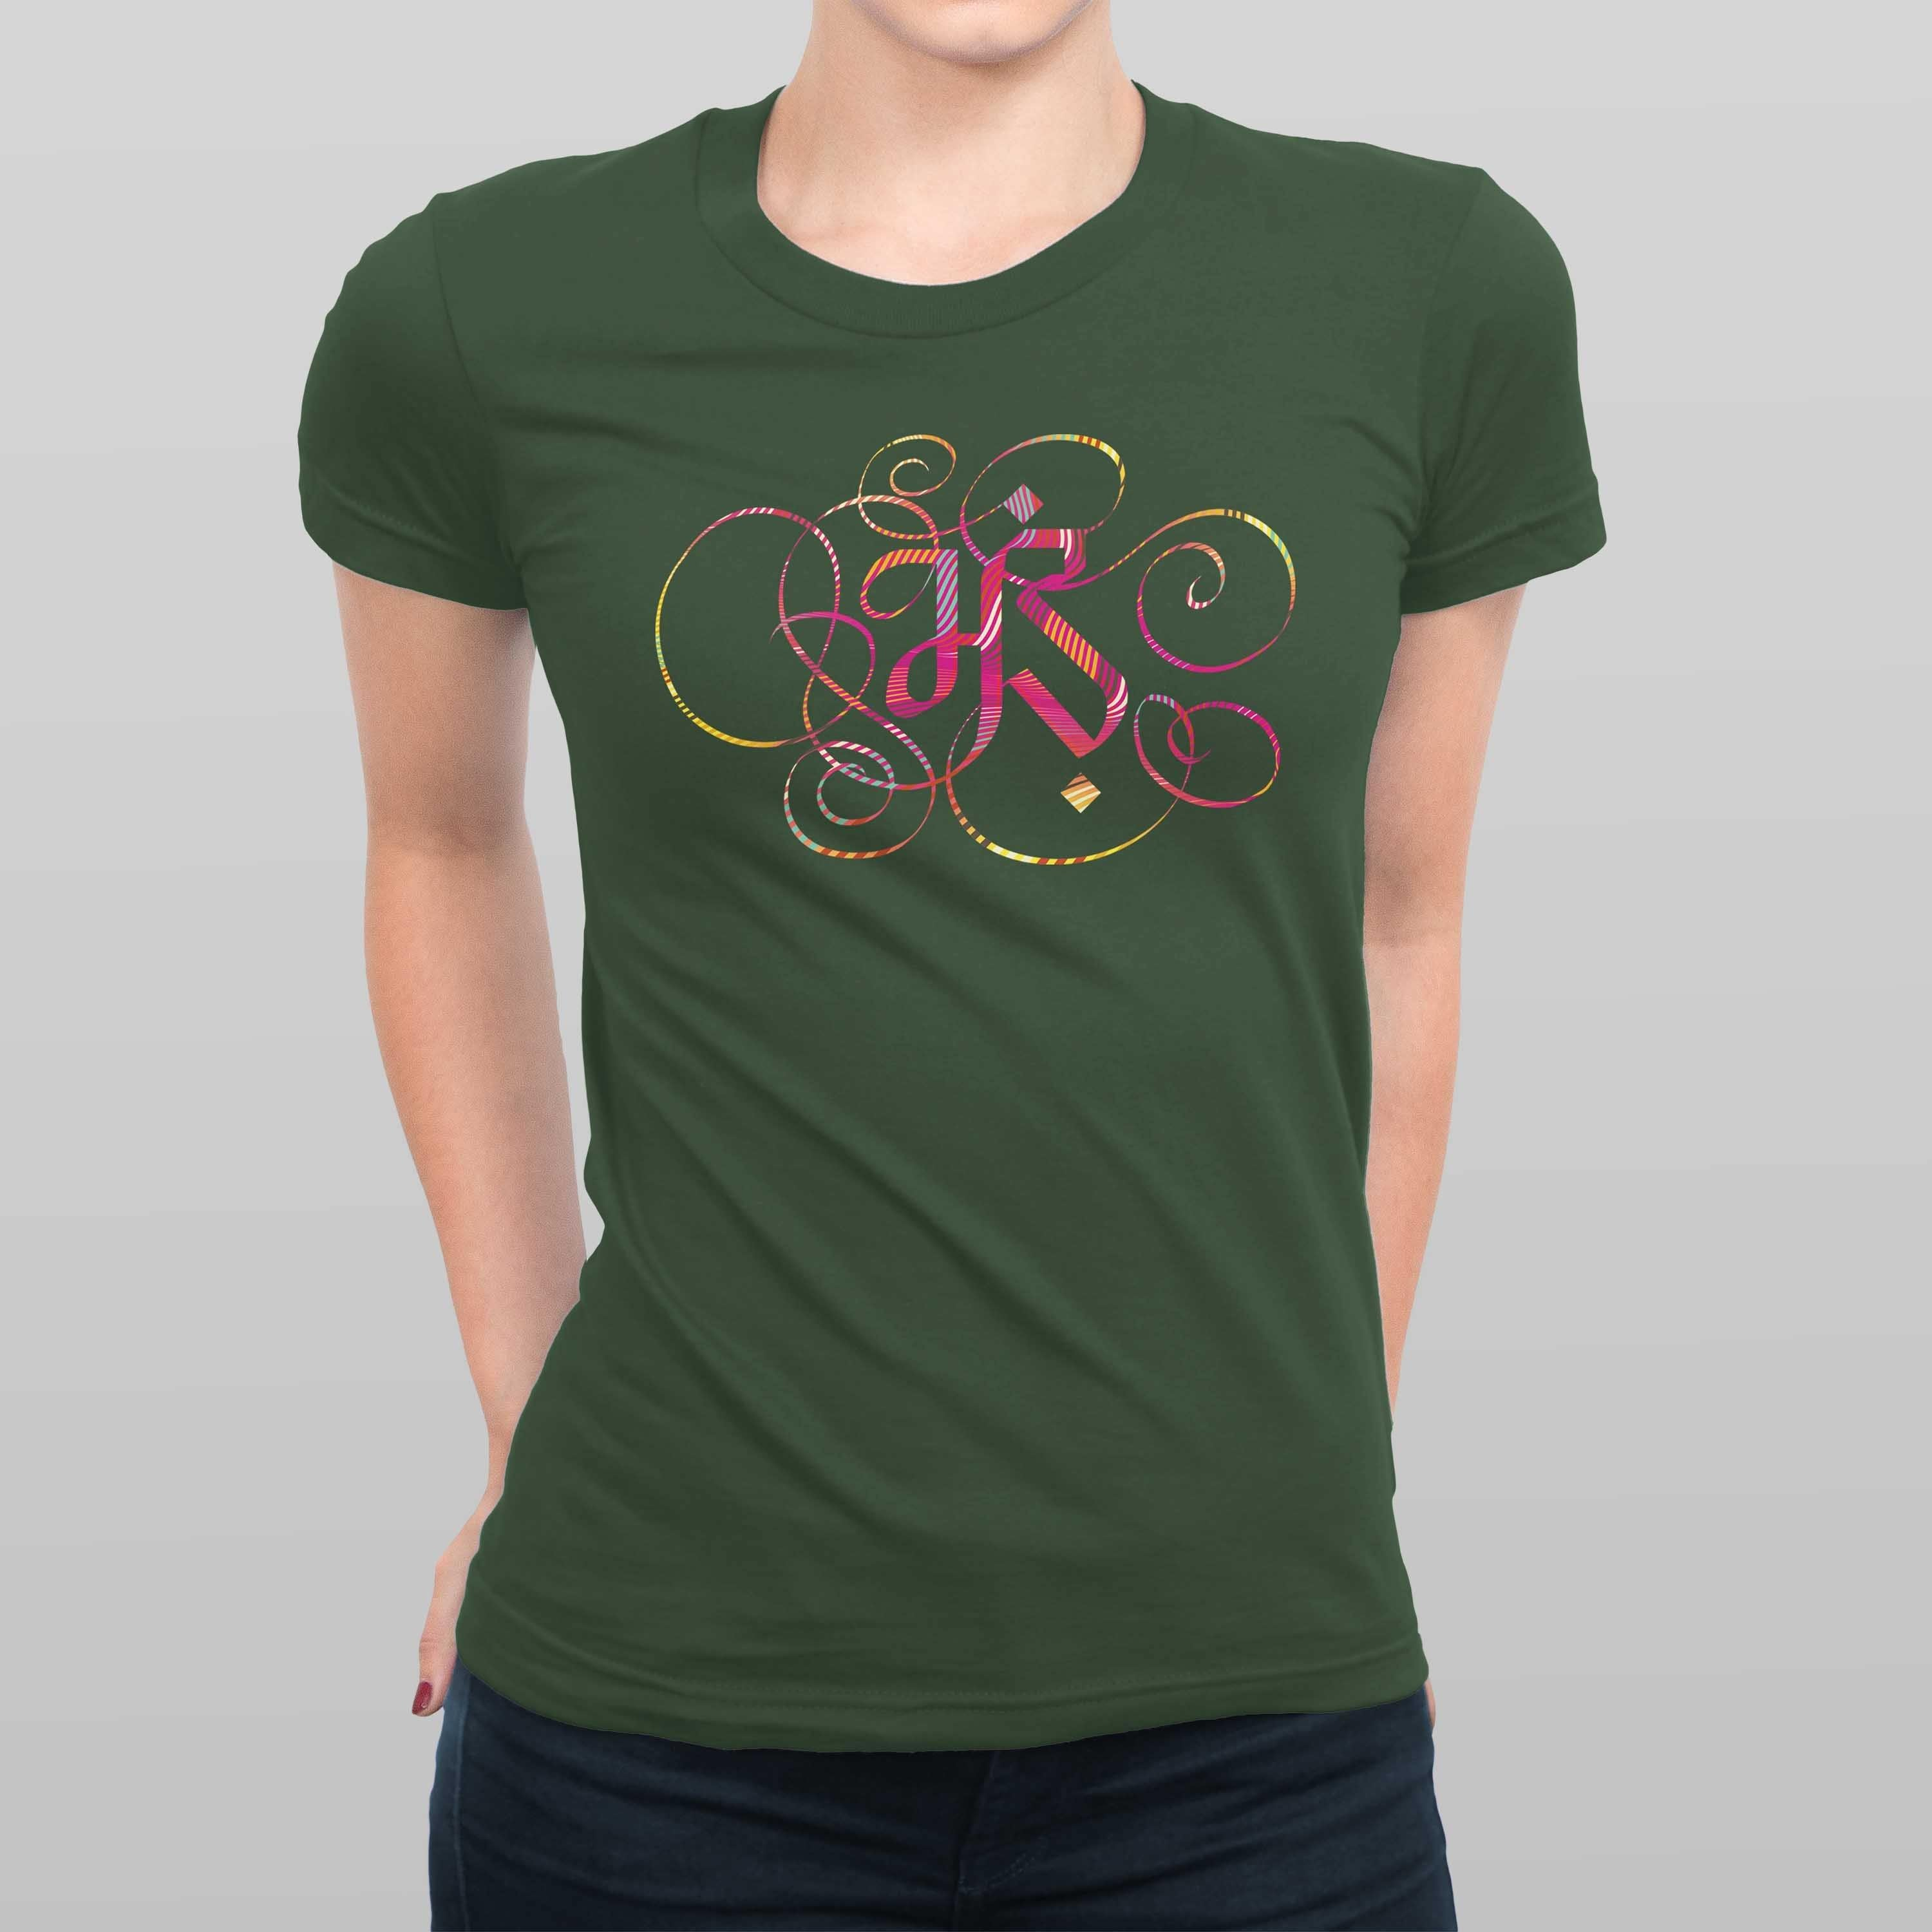 Bhand! Women's T-shirt - oglife.in